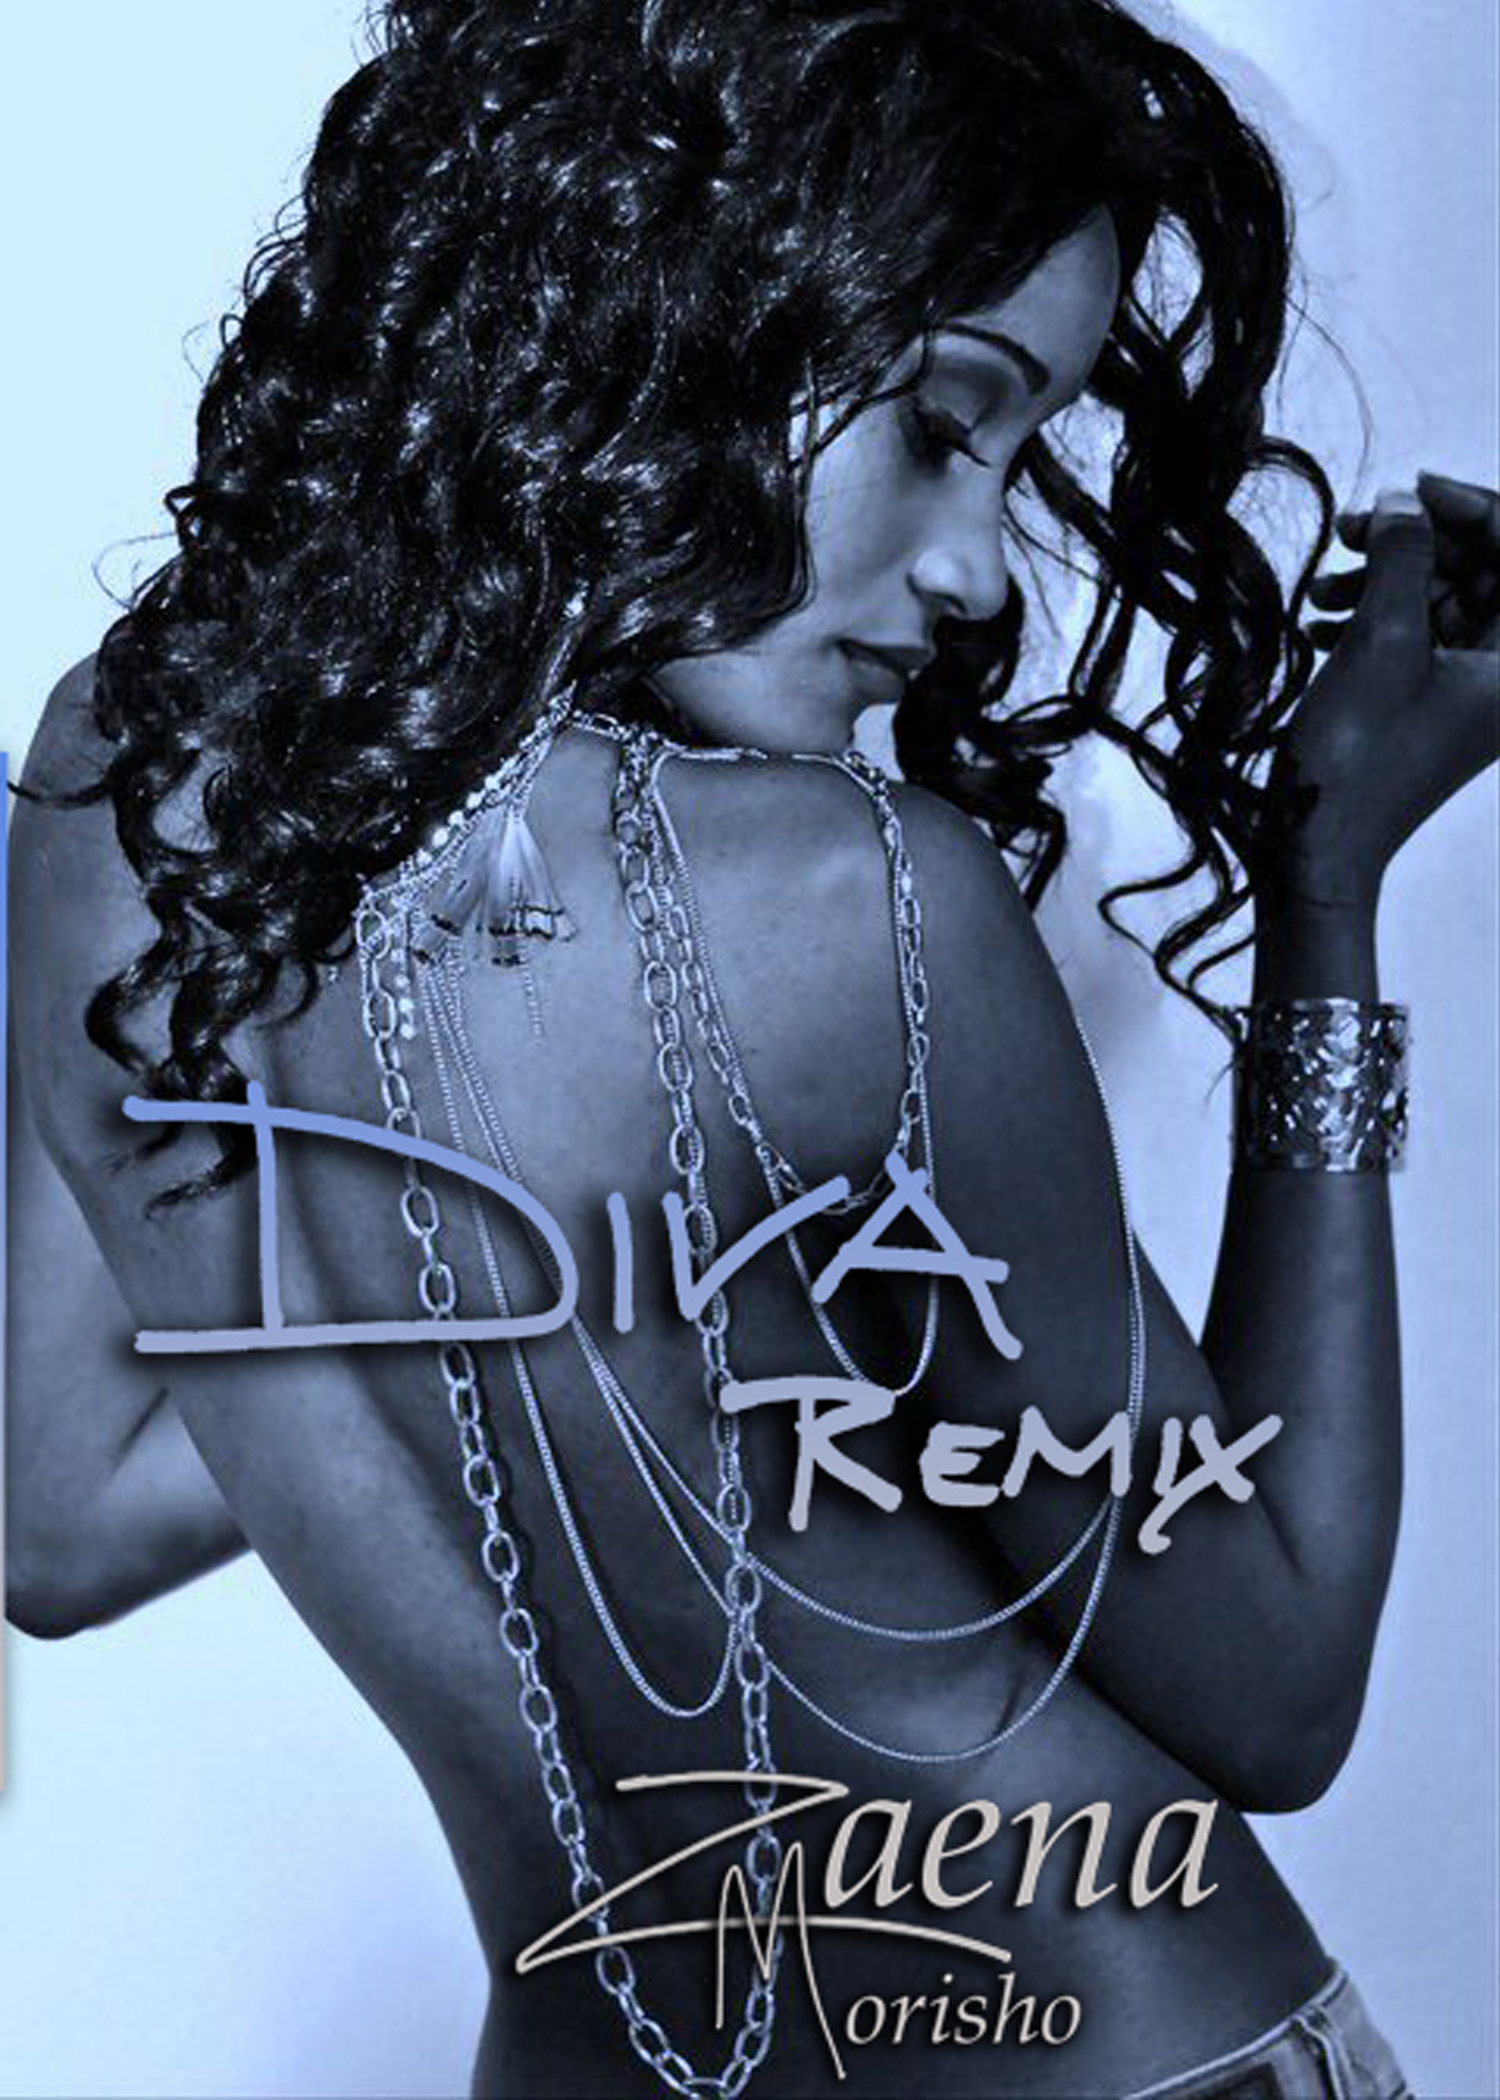 Zaena Morisho - Diva (Remix) (Clean Version)